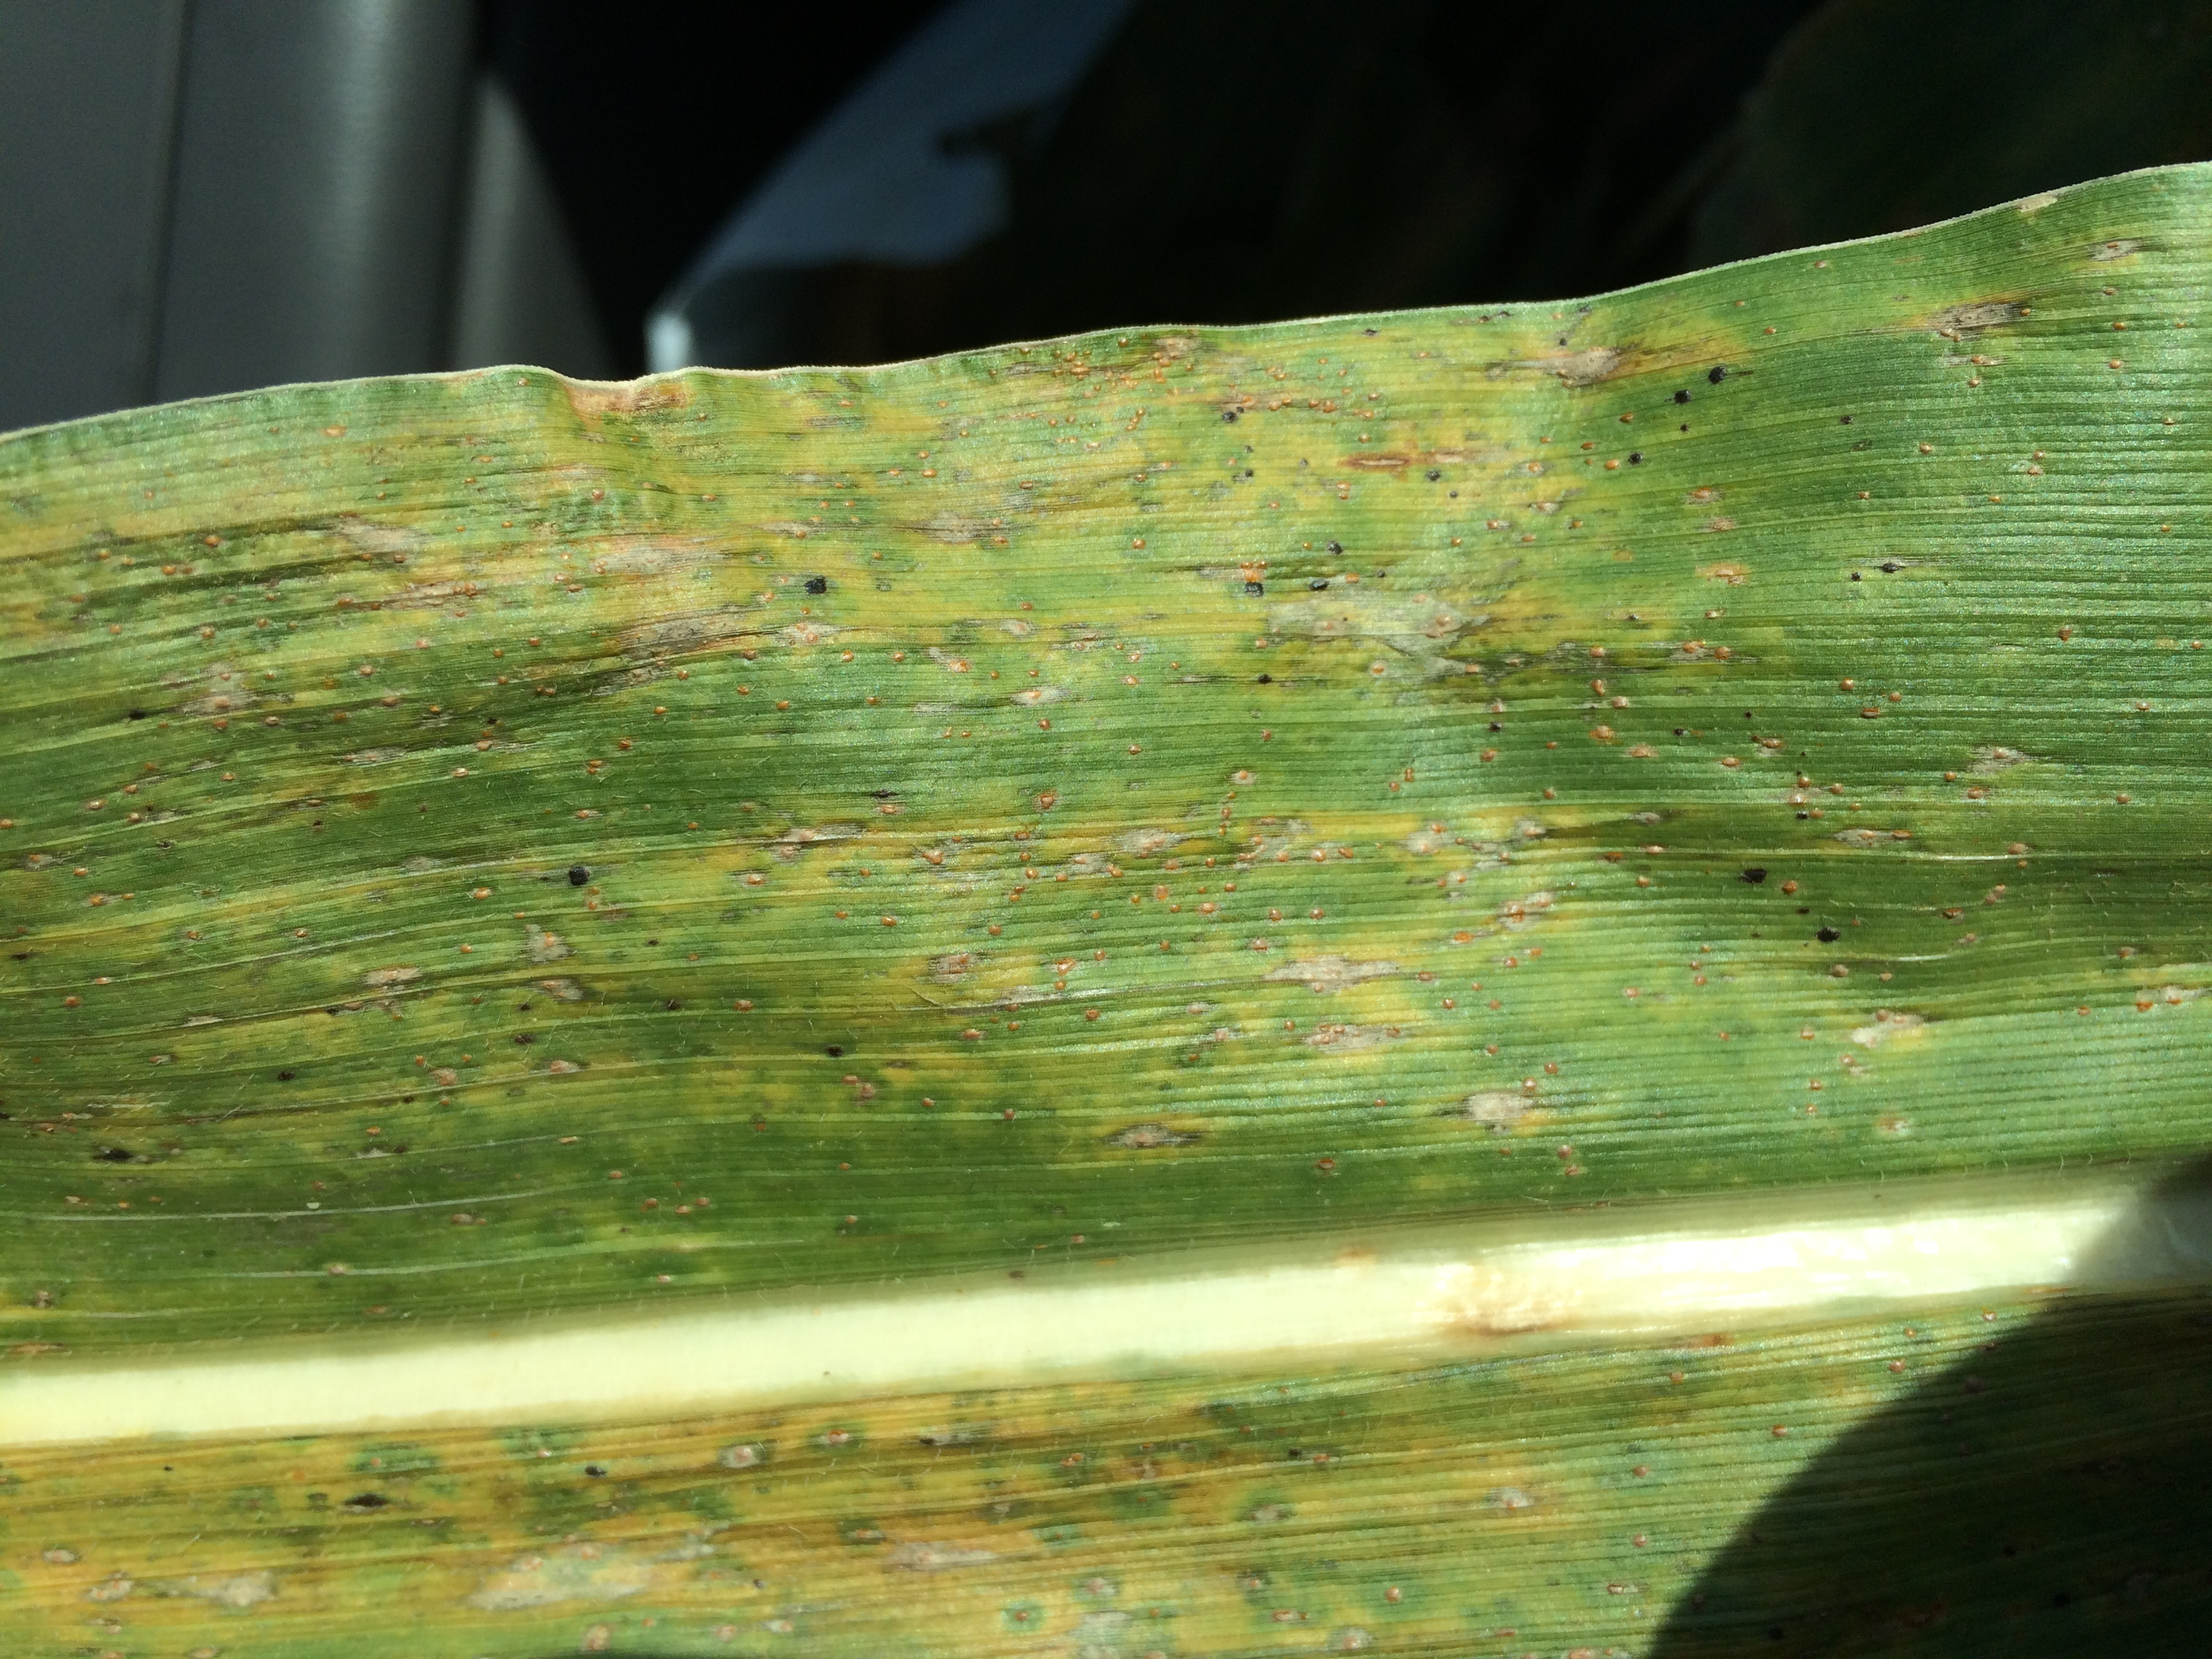 Tar spot developing on corn leaf.